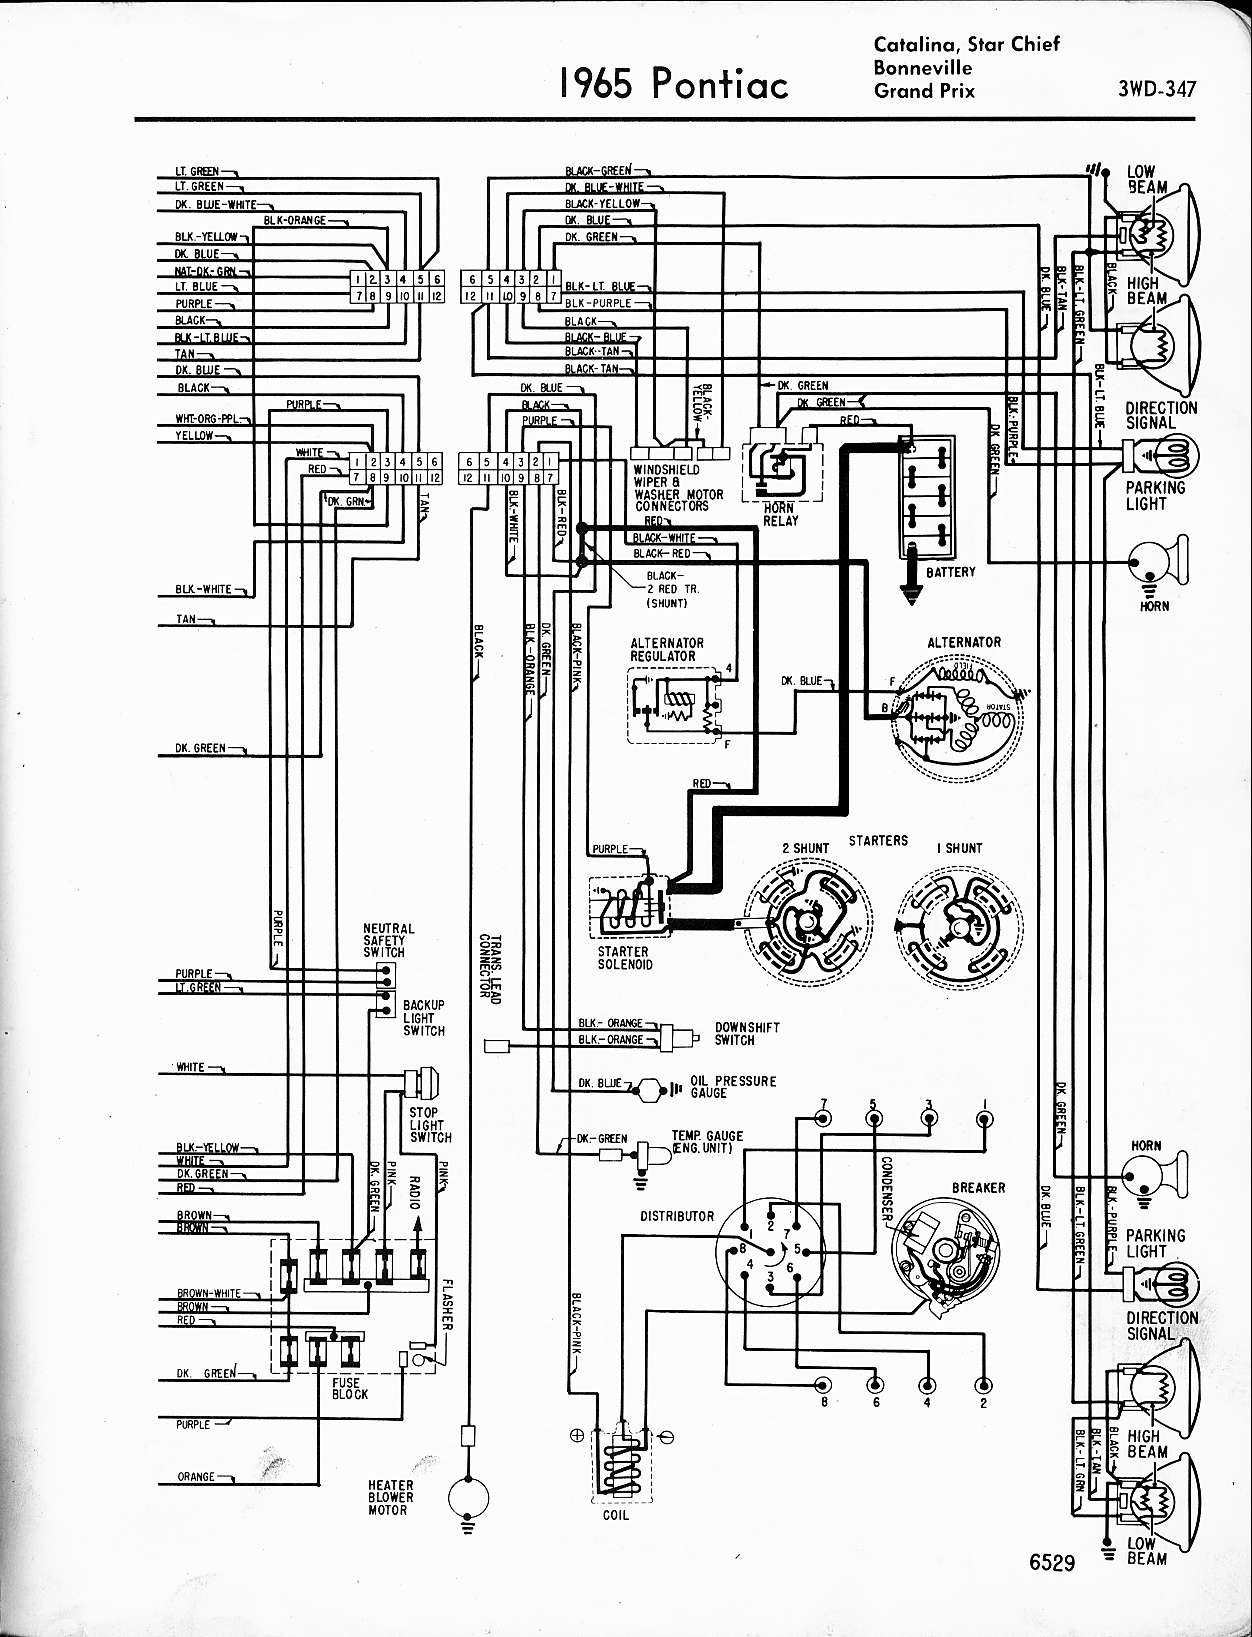 bonneville wiring diagram wallace racing wiring diagrams 1965 catalina star chief bonneville grand prix left page